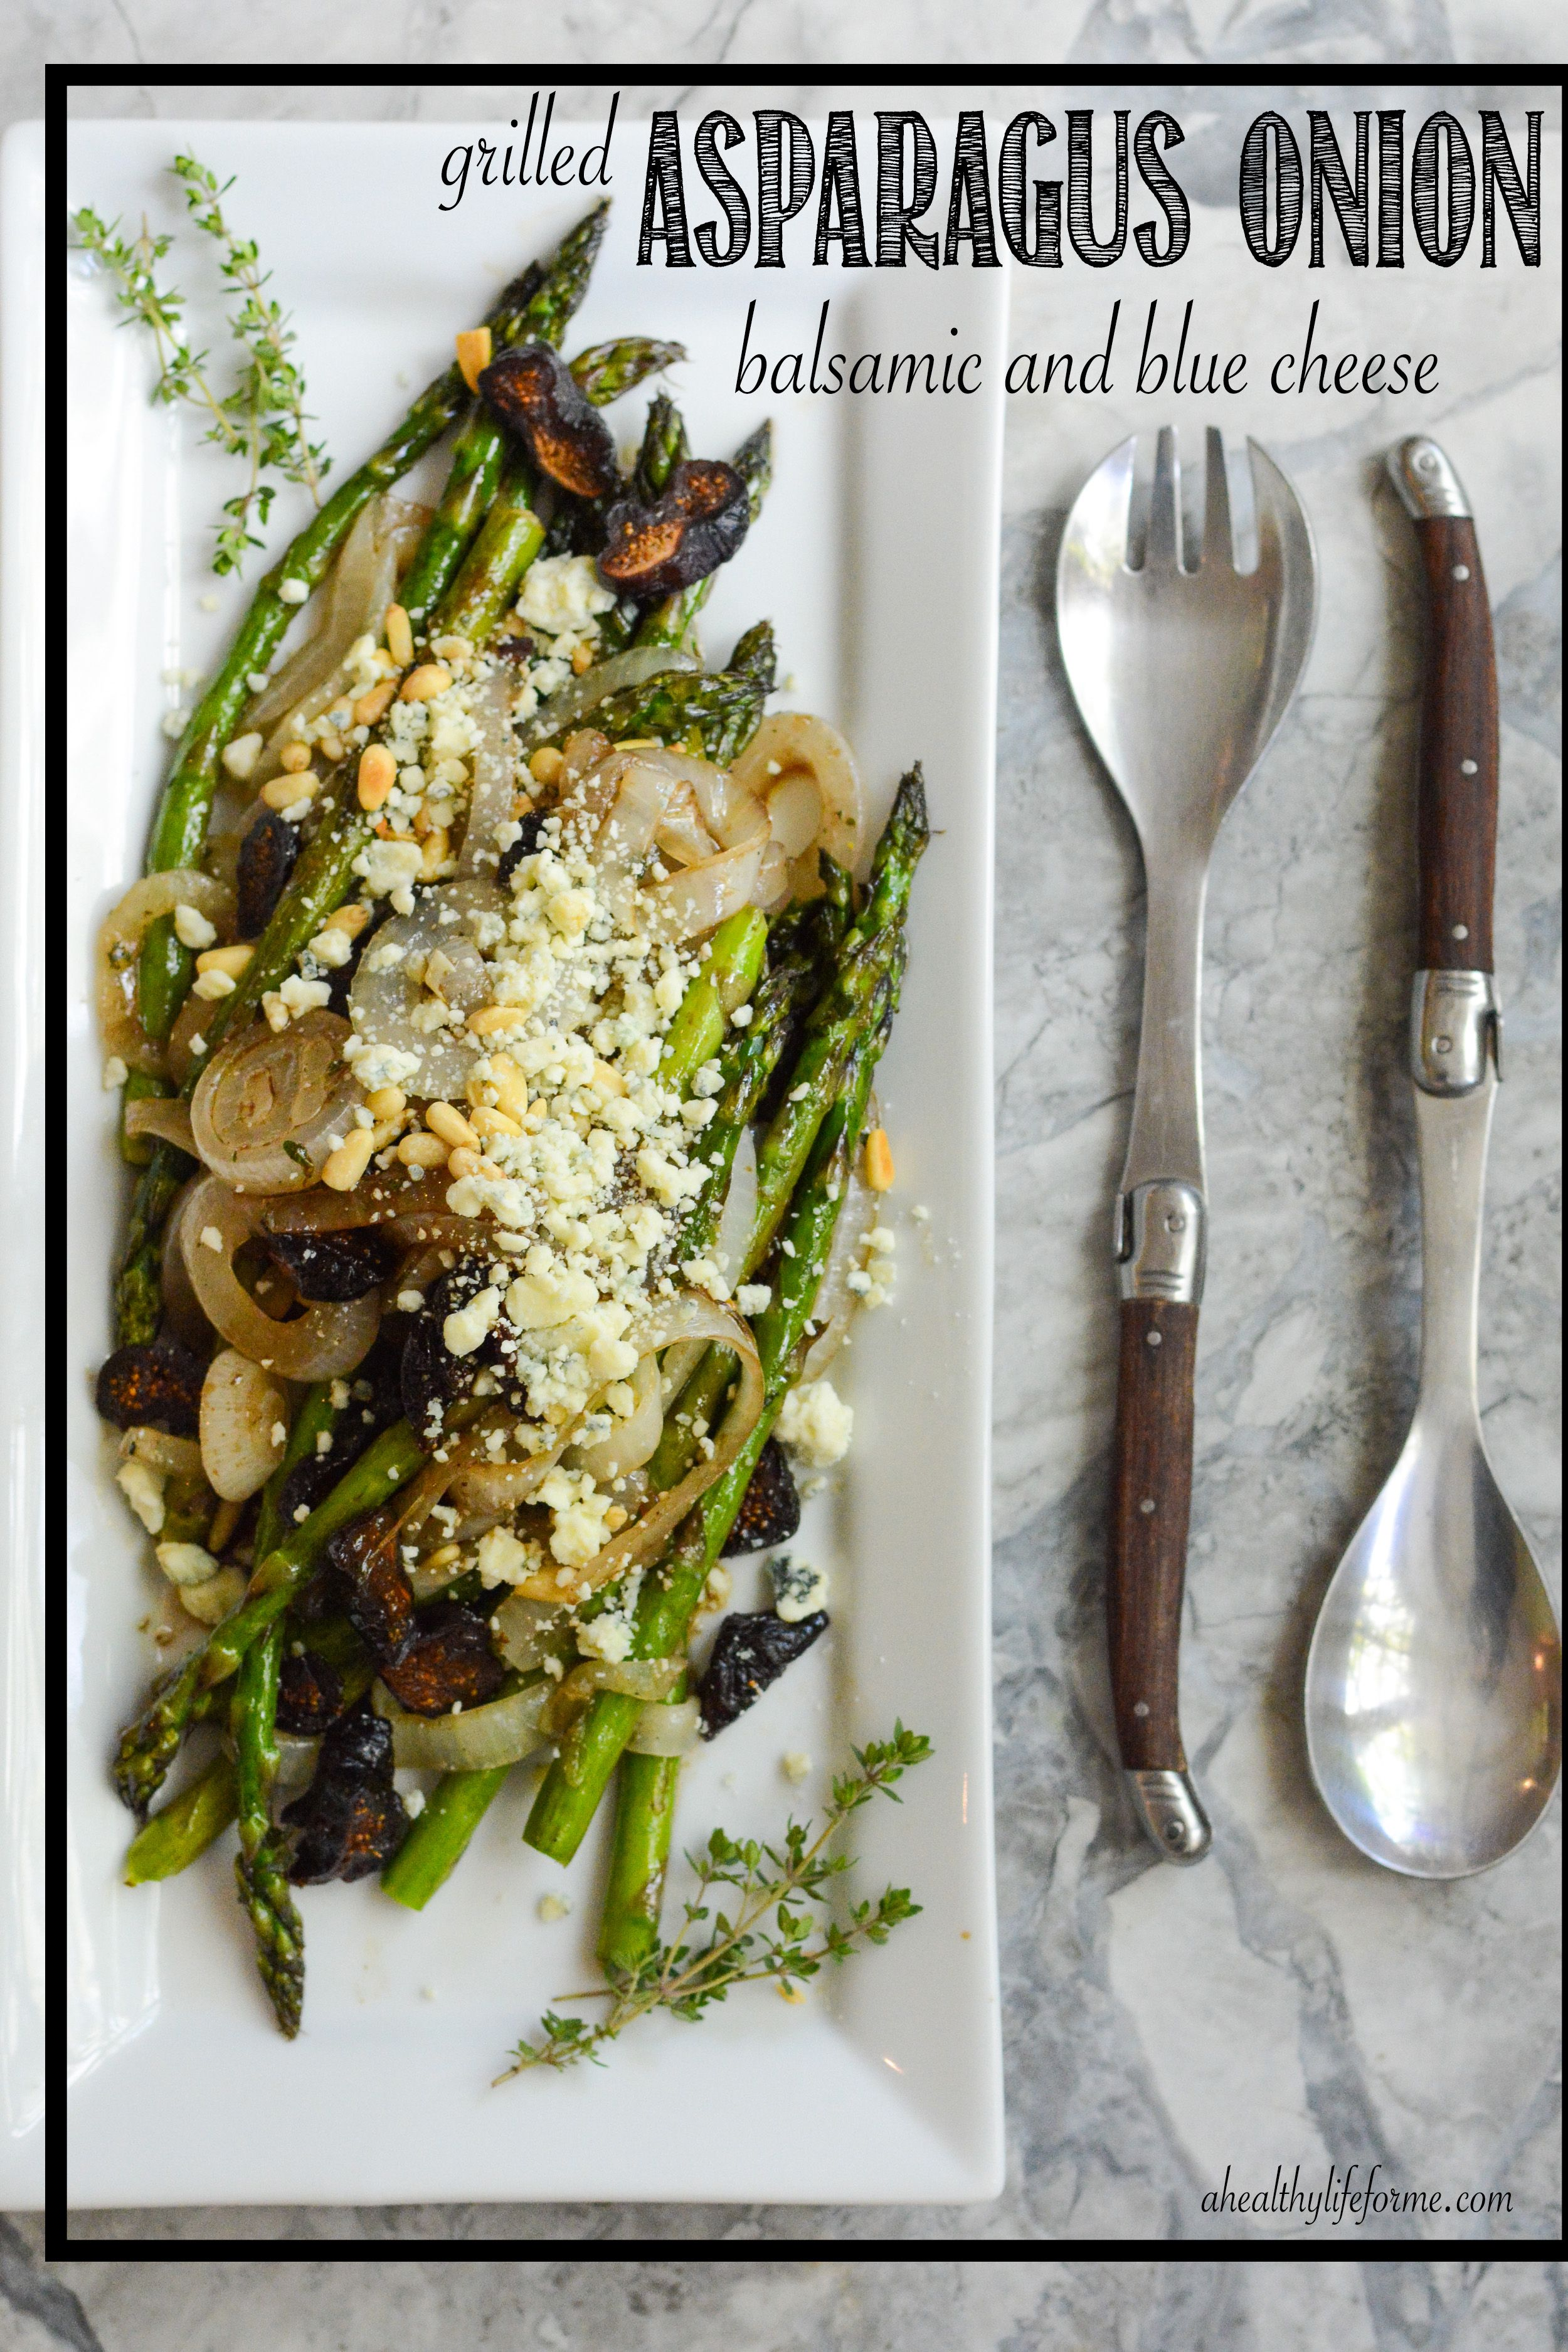 Grilled Asparagus Onion Balsamic Blue Cheese. (Can use persian feta in place of blue cheese) + add balsamic cream on top.